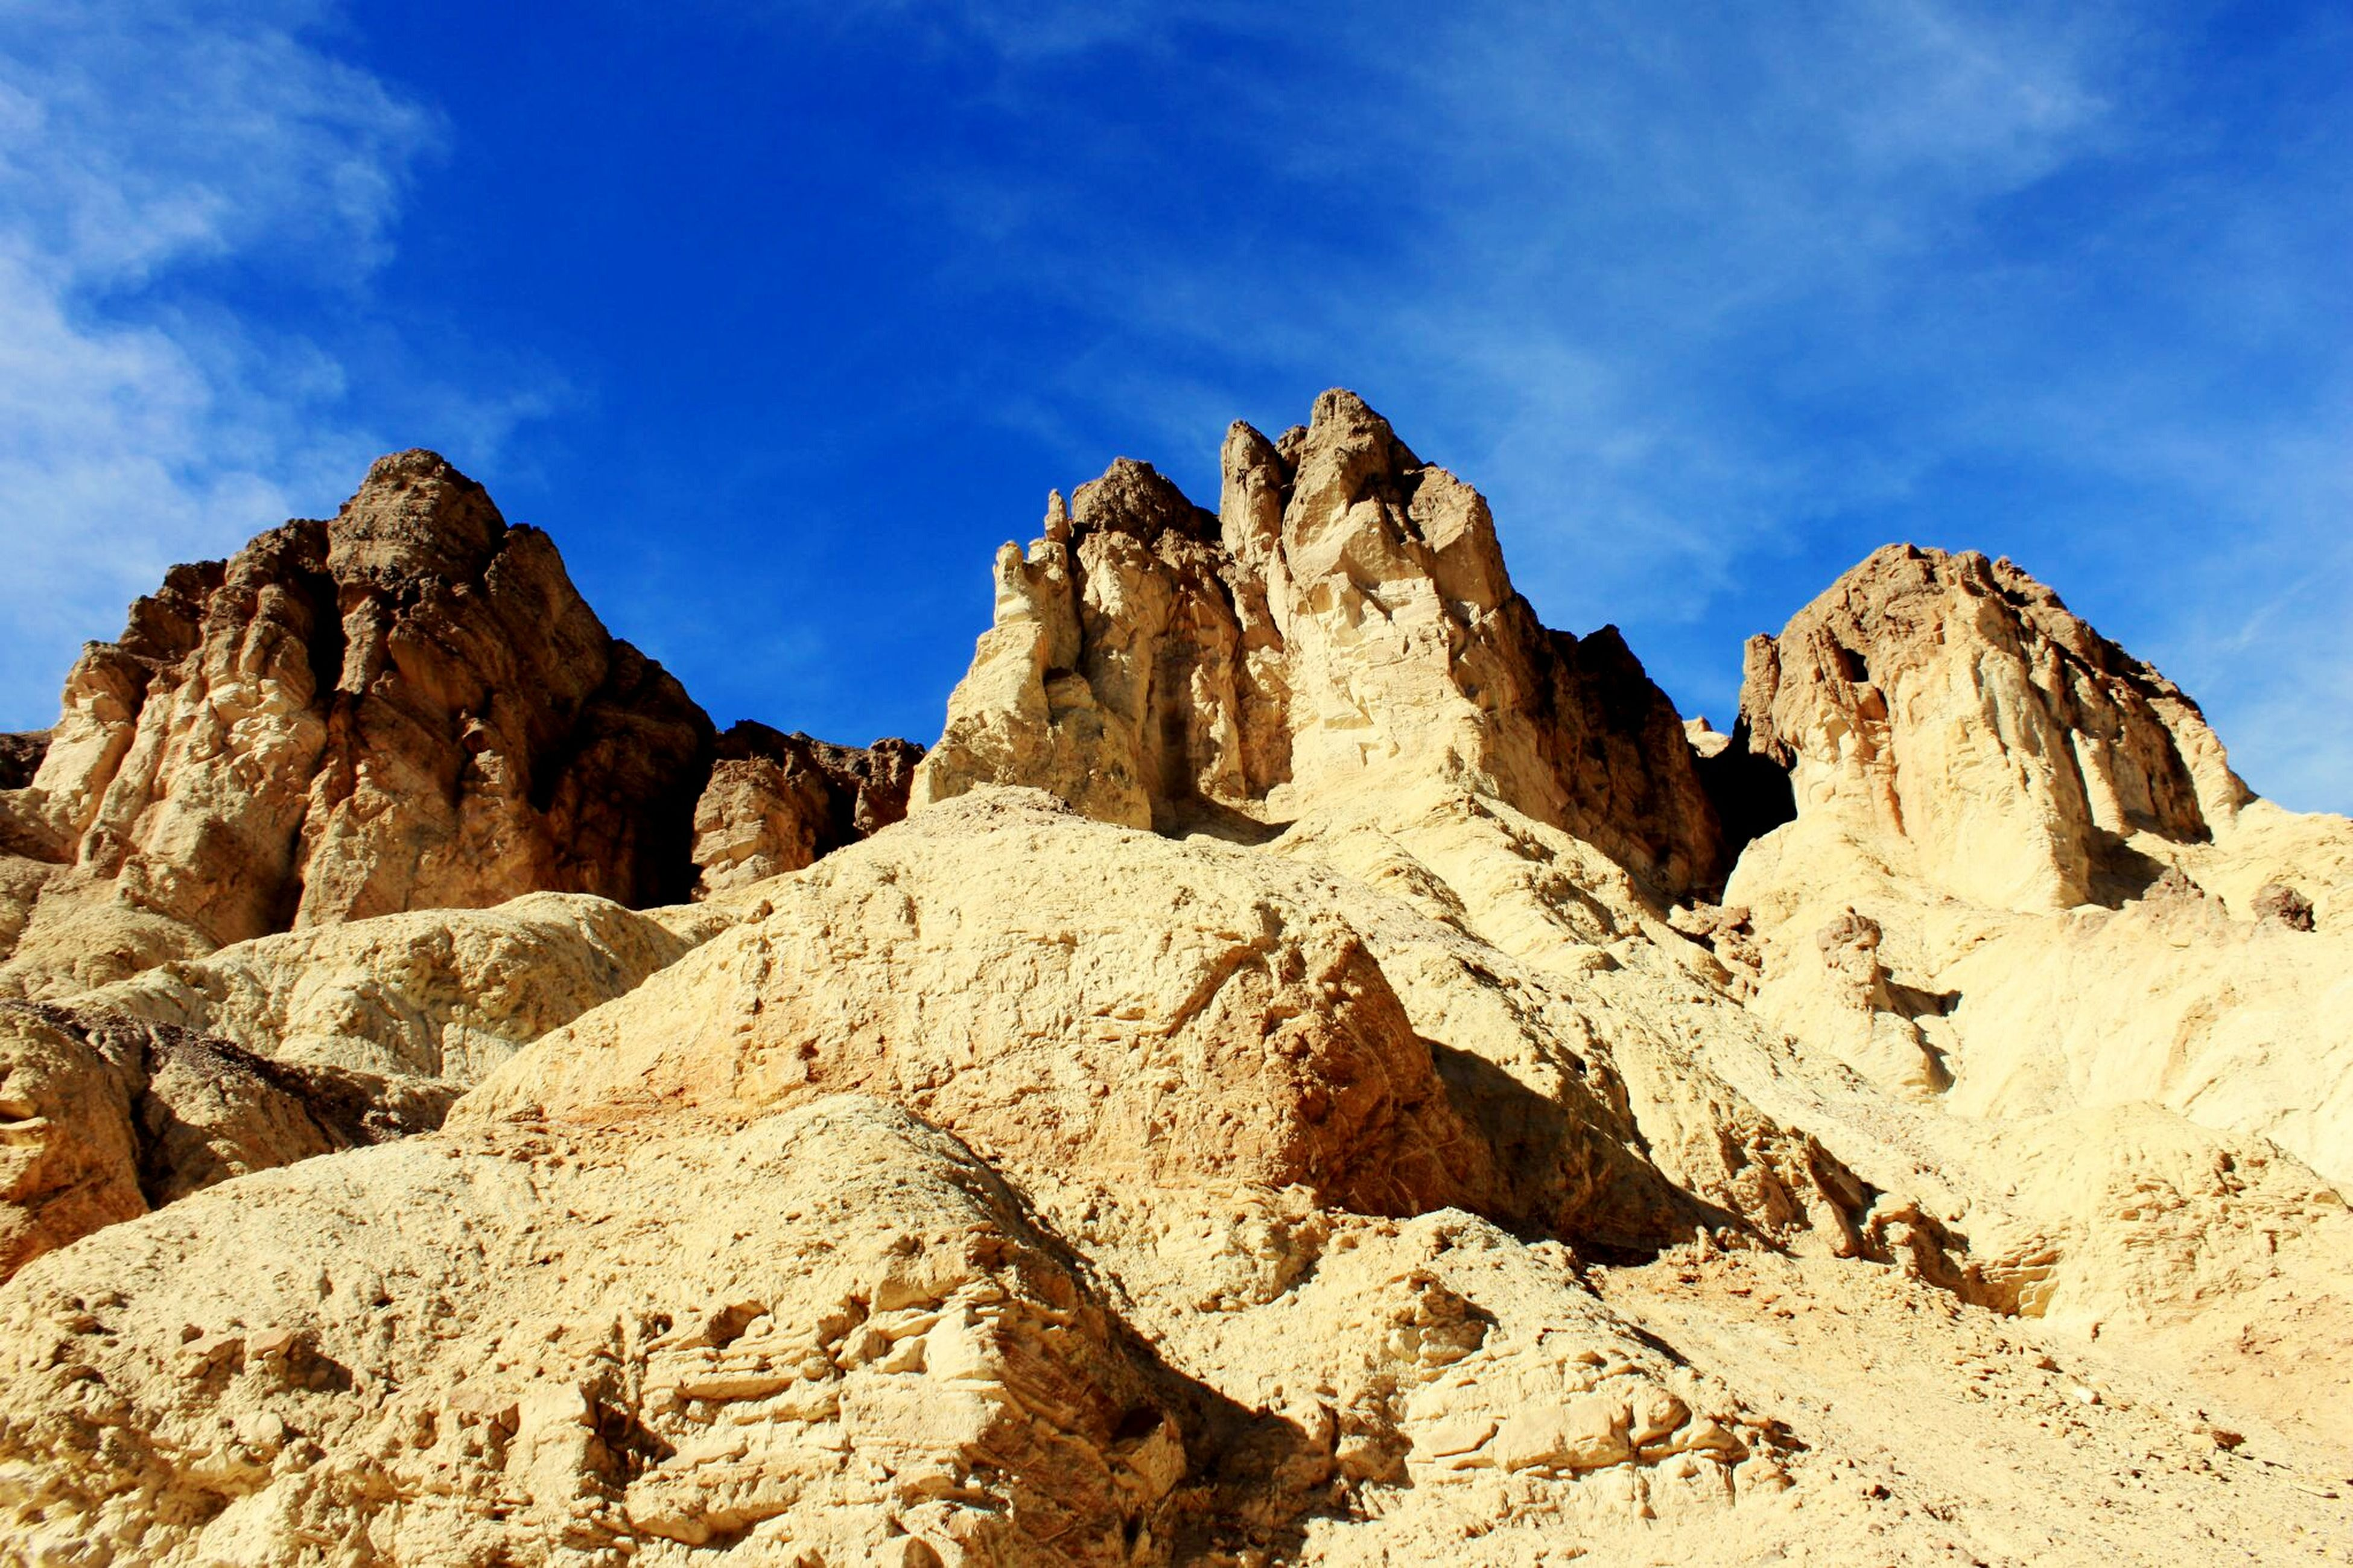 Peaks along the Golden Canyon trail in Death Valley